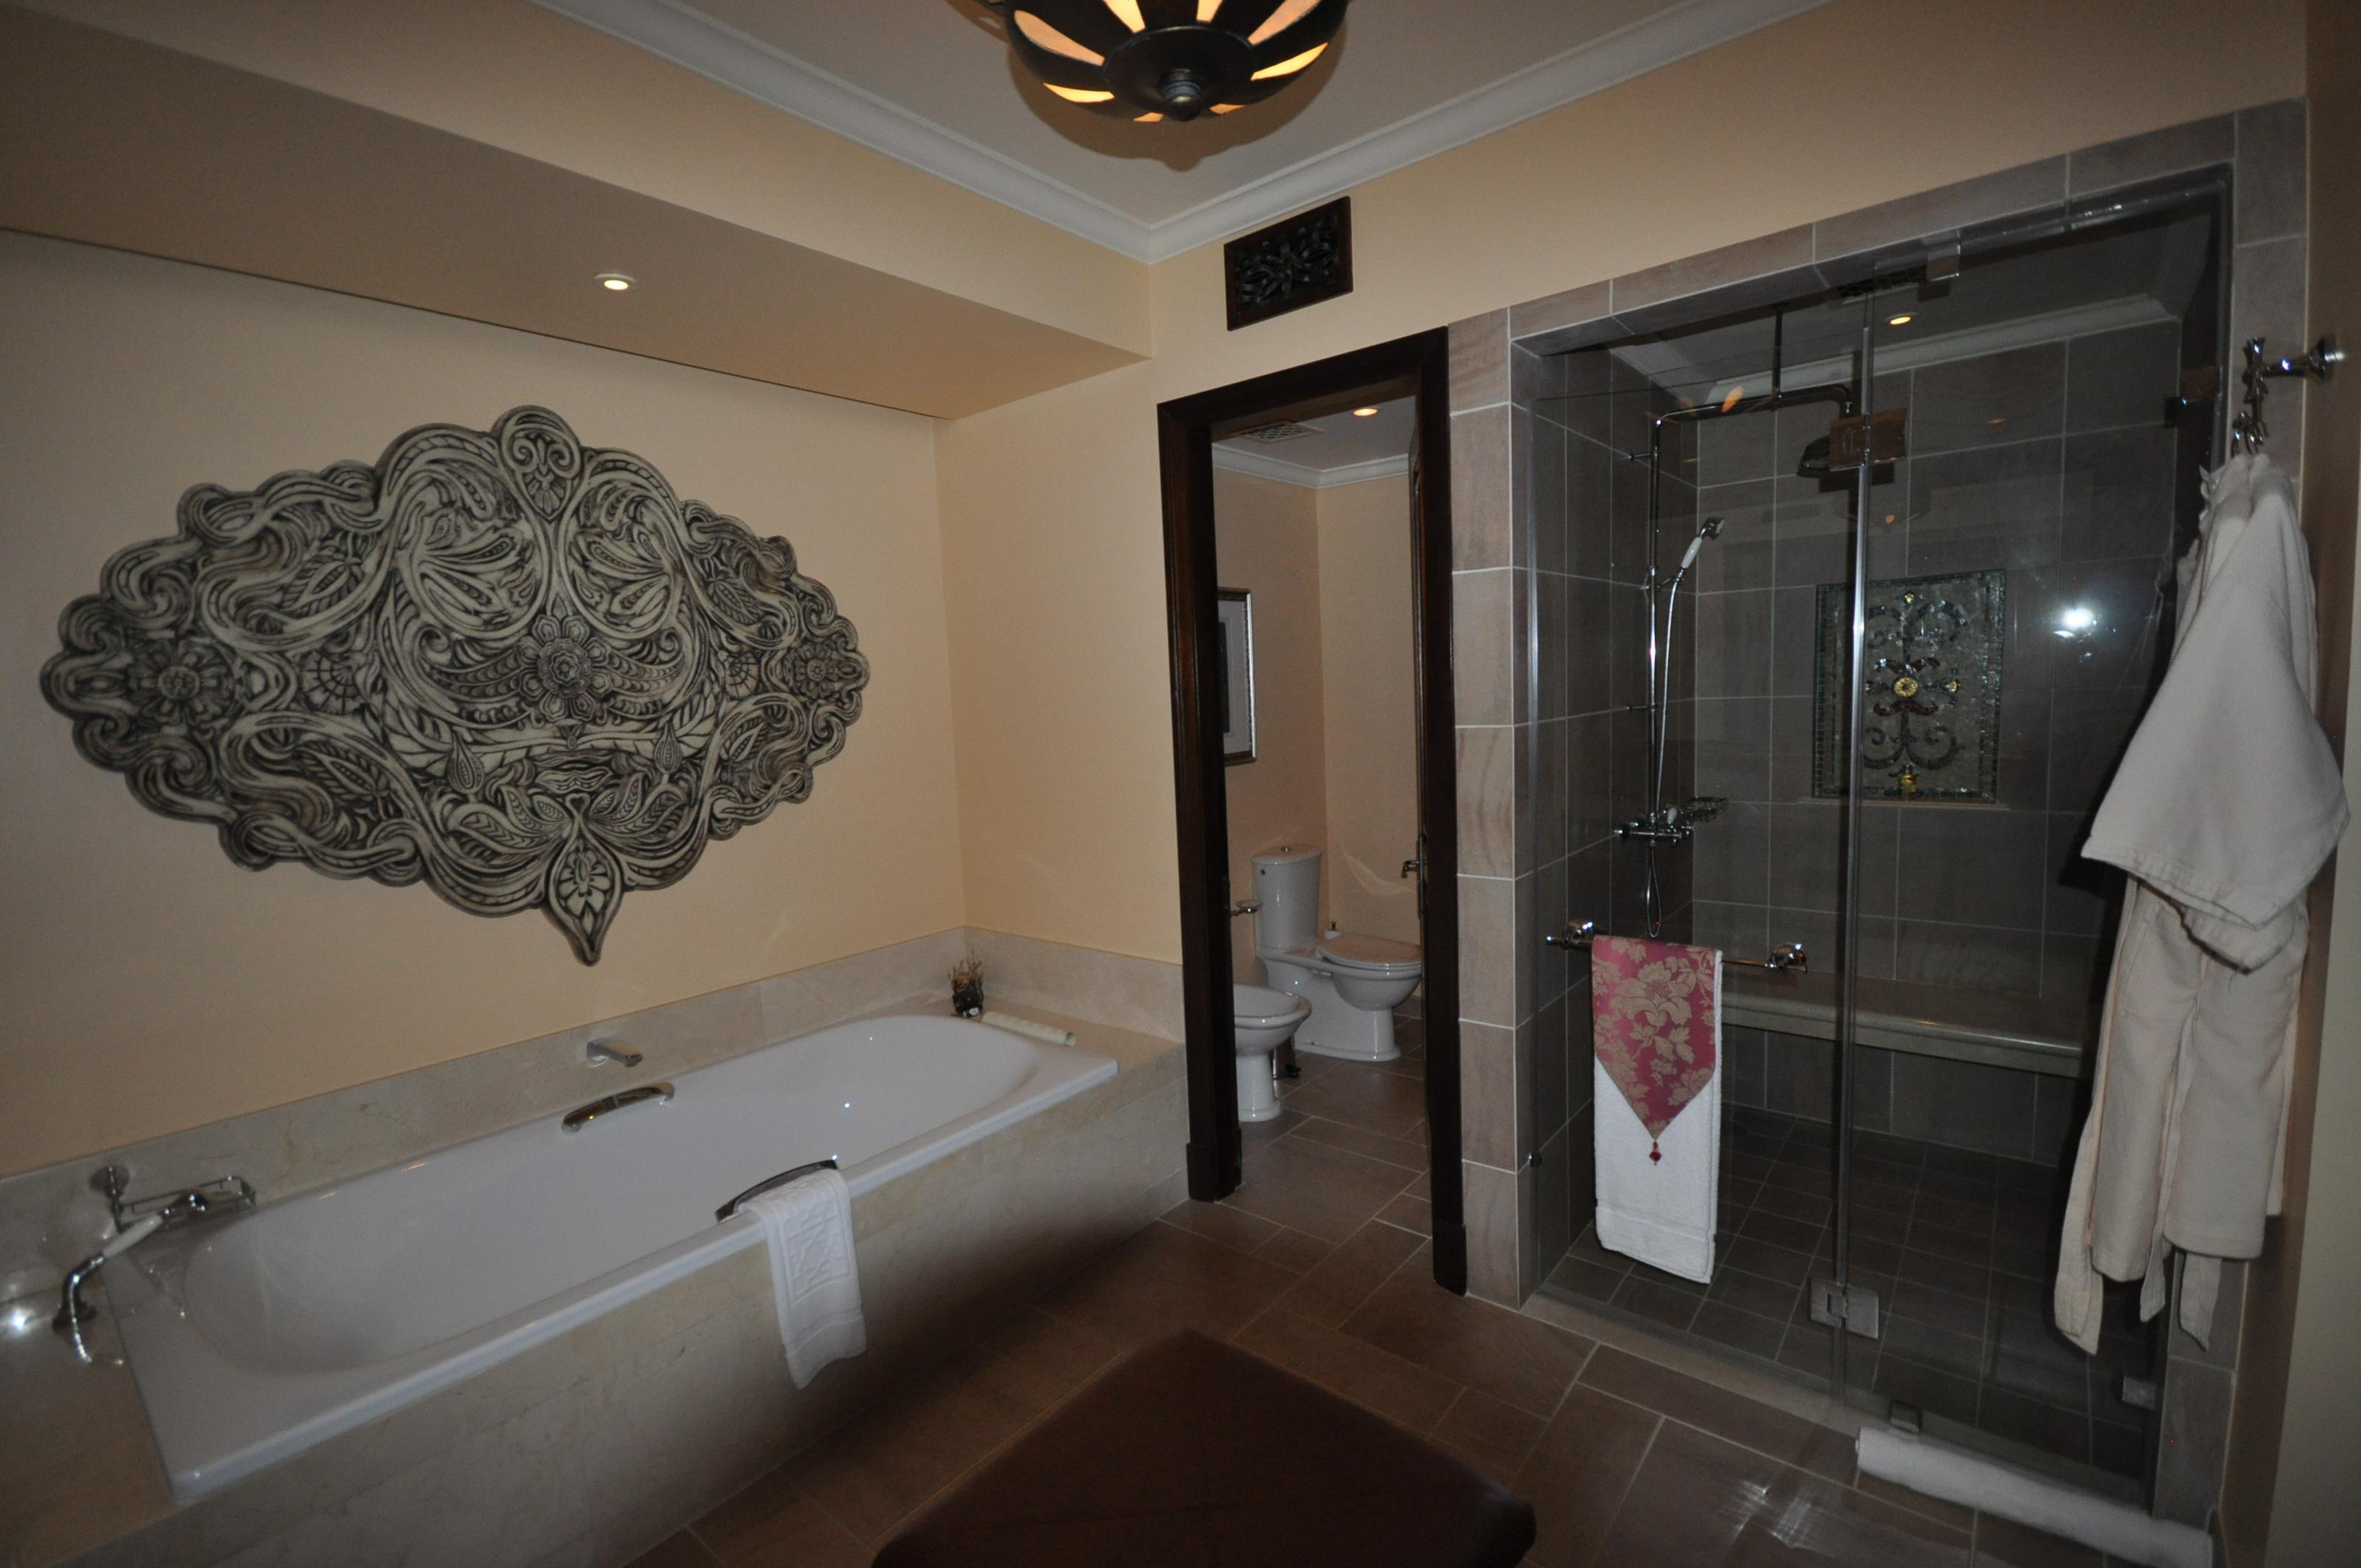 Germany to dubai honeymoon kick off style hi club Bathroom design jobs dubai